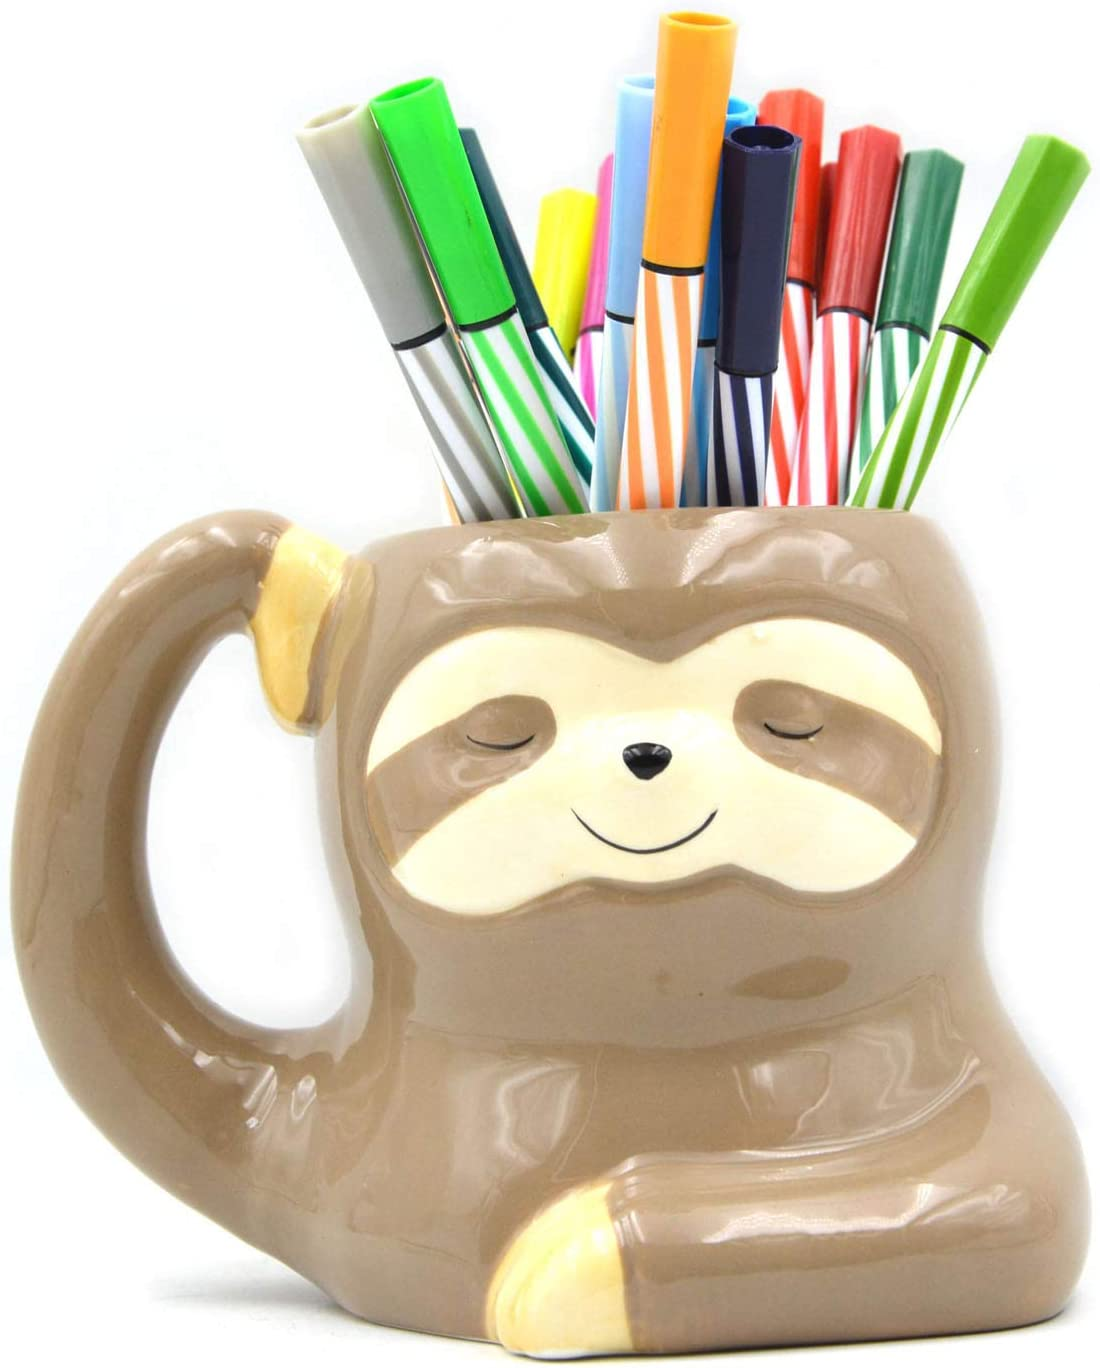 3.9 Inch Ceramic Sloth Shaped Cup Sloth Pen Holder Pencil Holder/Sloth Toothbrush Holder Cup Brush Holder/Sloth Planter Pot Desk Organizer Decoration Multipurpose Pot